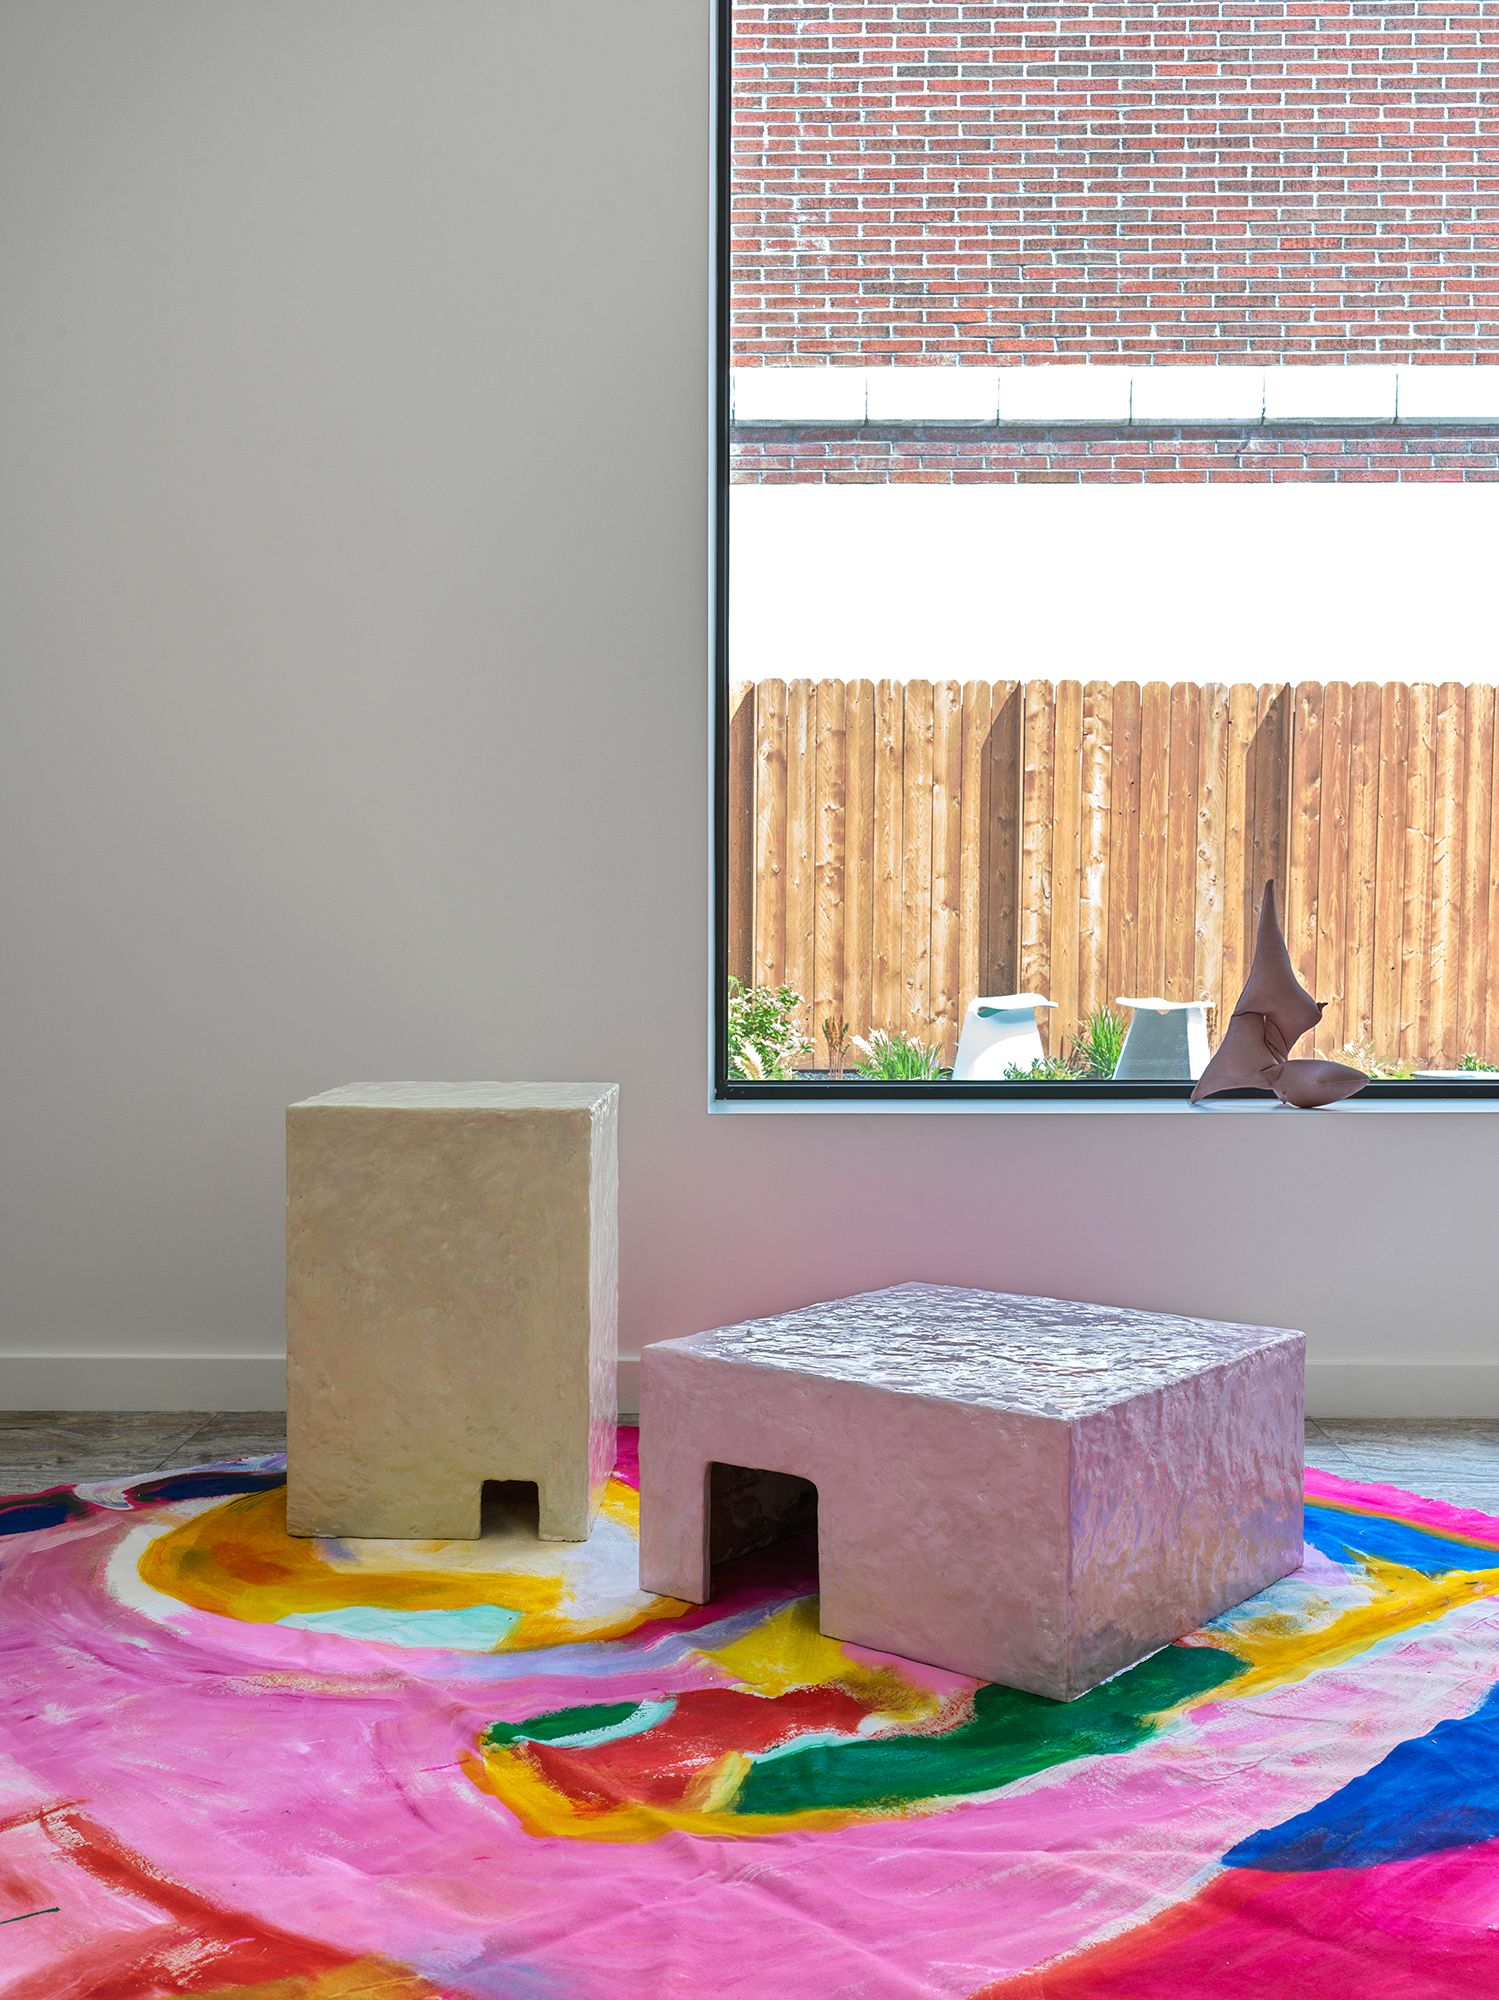 Inside~Out: in the Garden Showcases Work by 26 Independent Designers in Boerum Hill